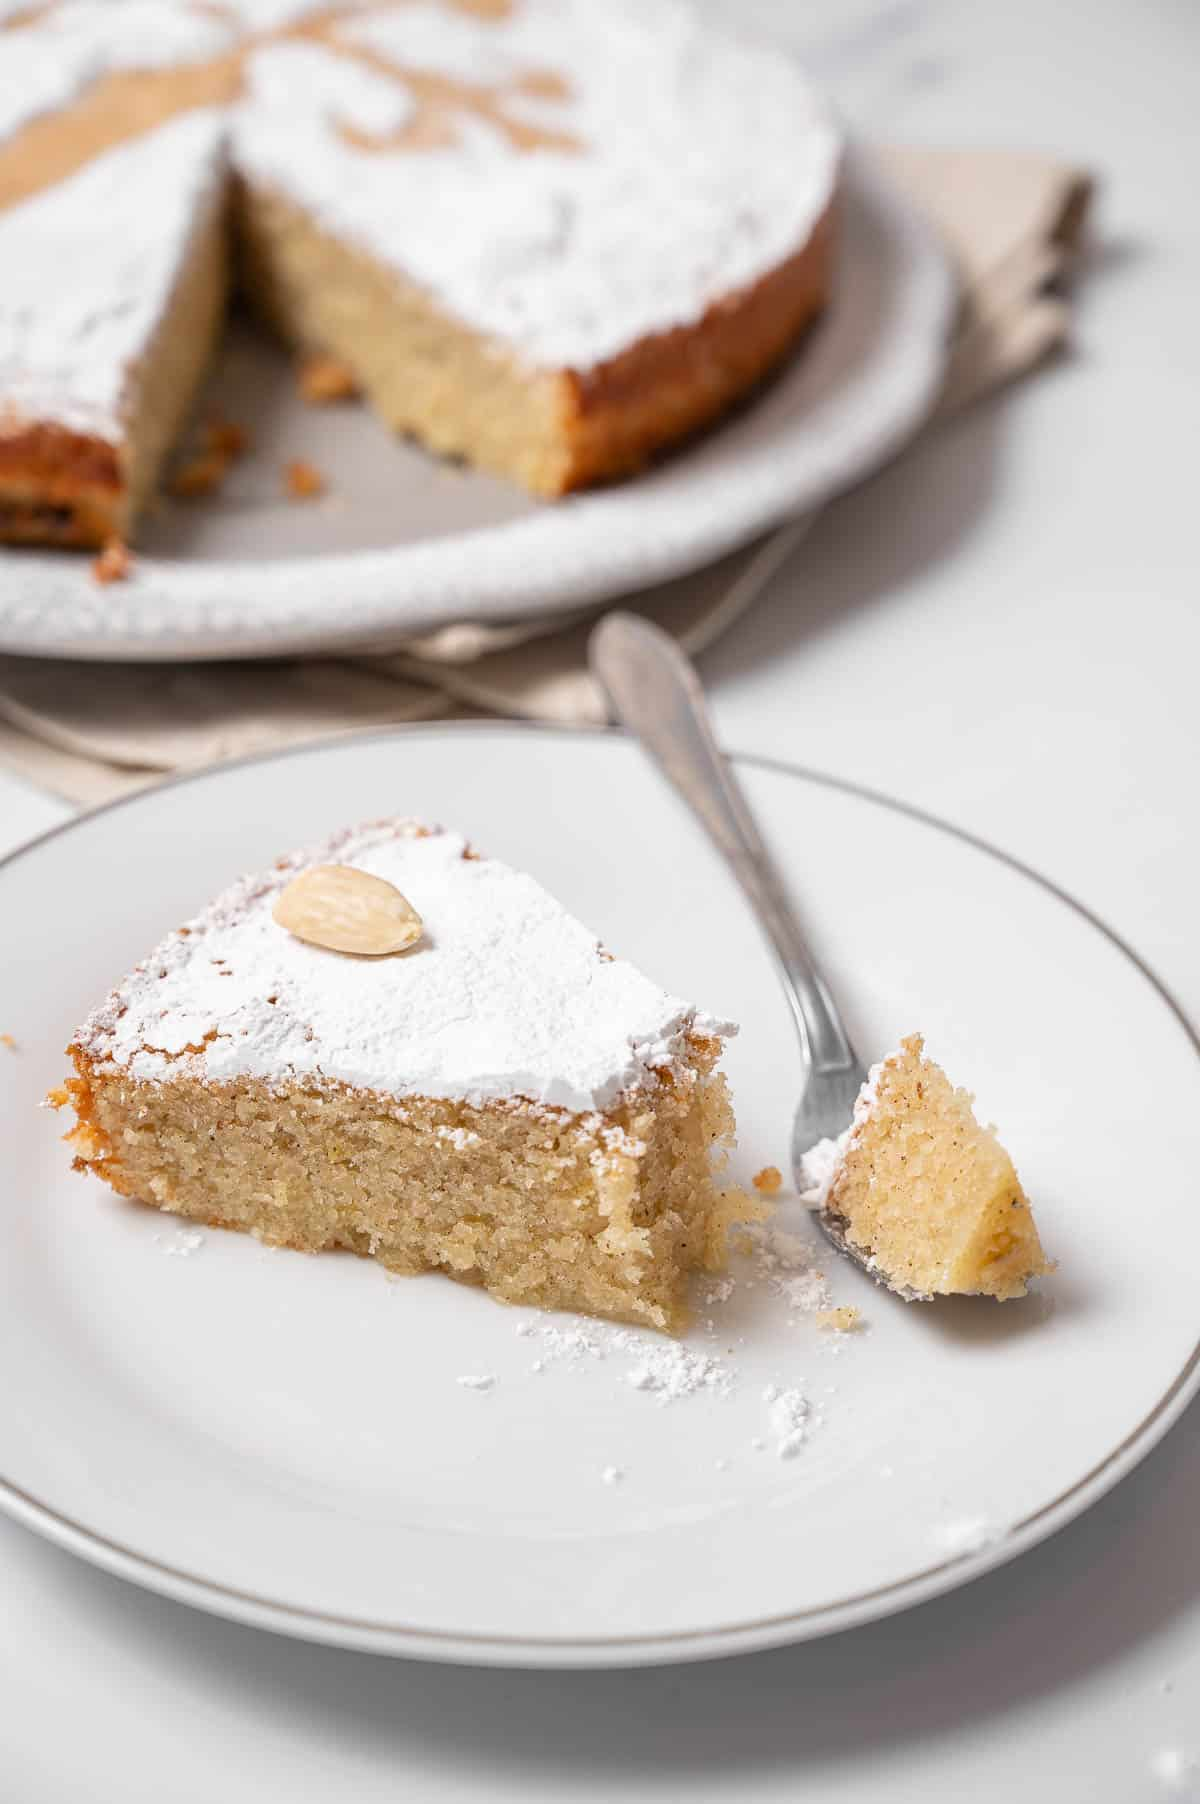 Spanish almond cake slice on a white plate with a bite taken on a fork.